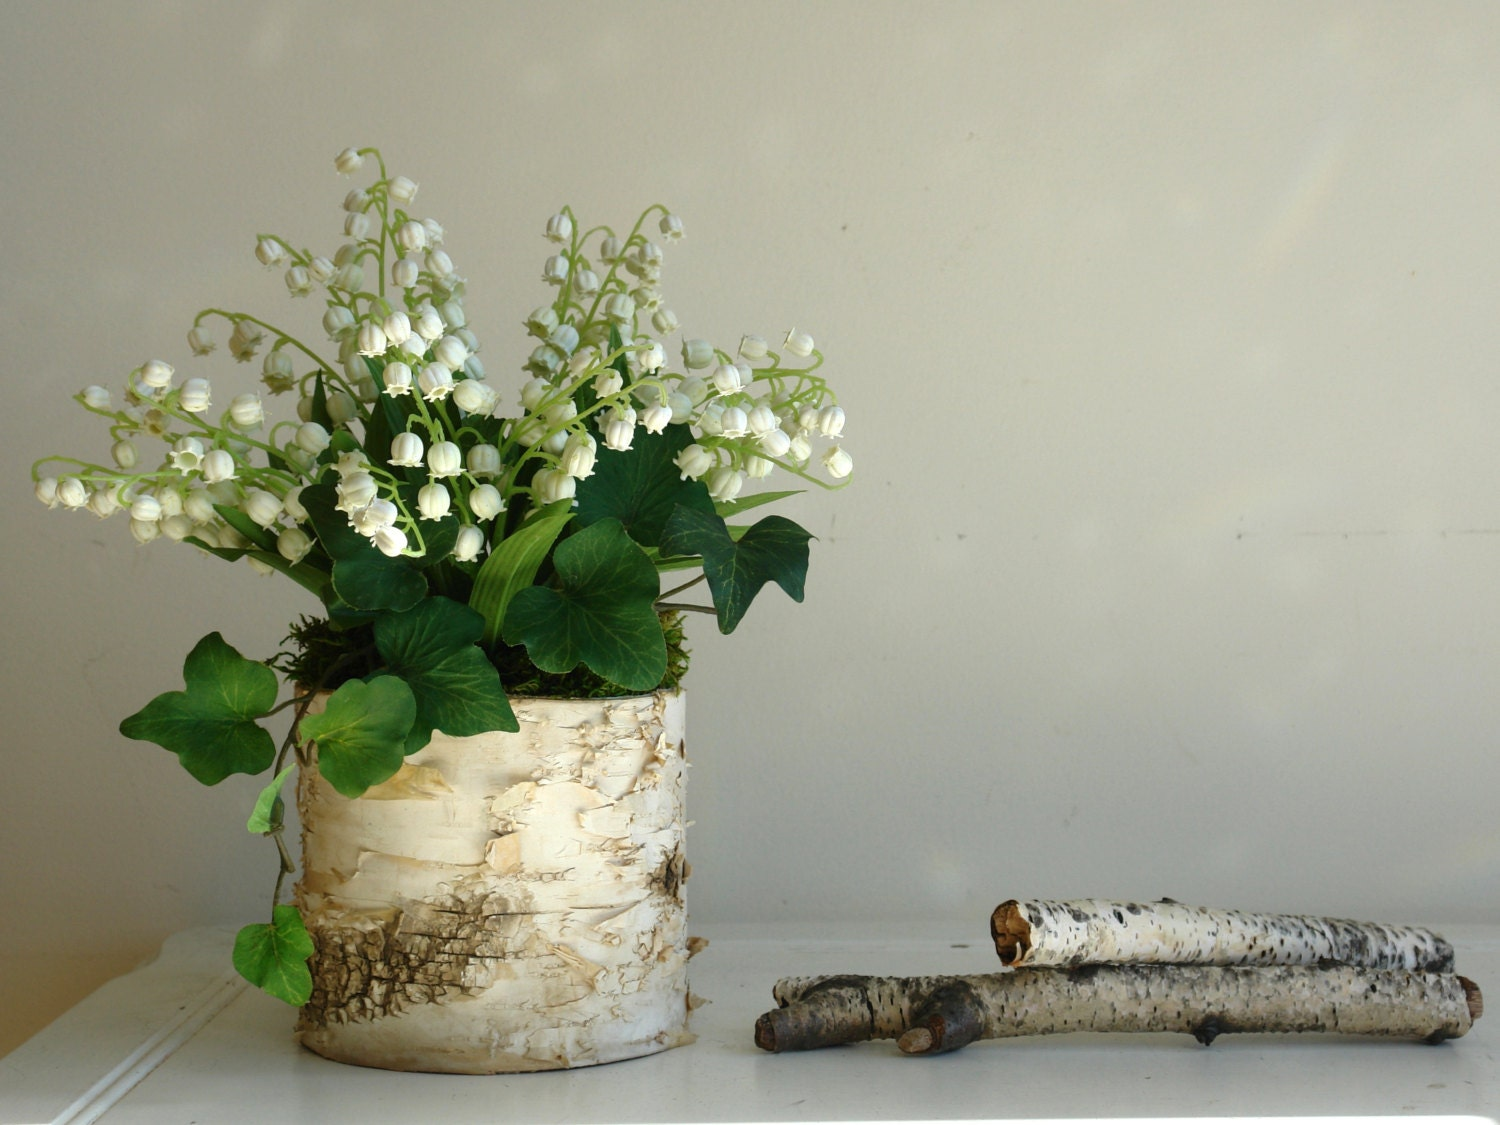 Lily of the valley birch bark vases arrangement home decor zoom reviewsmspy